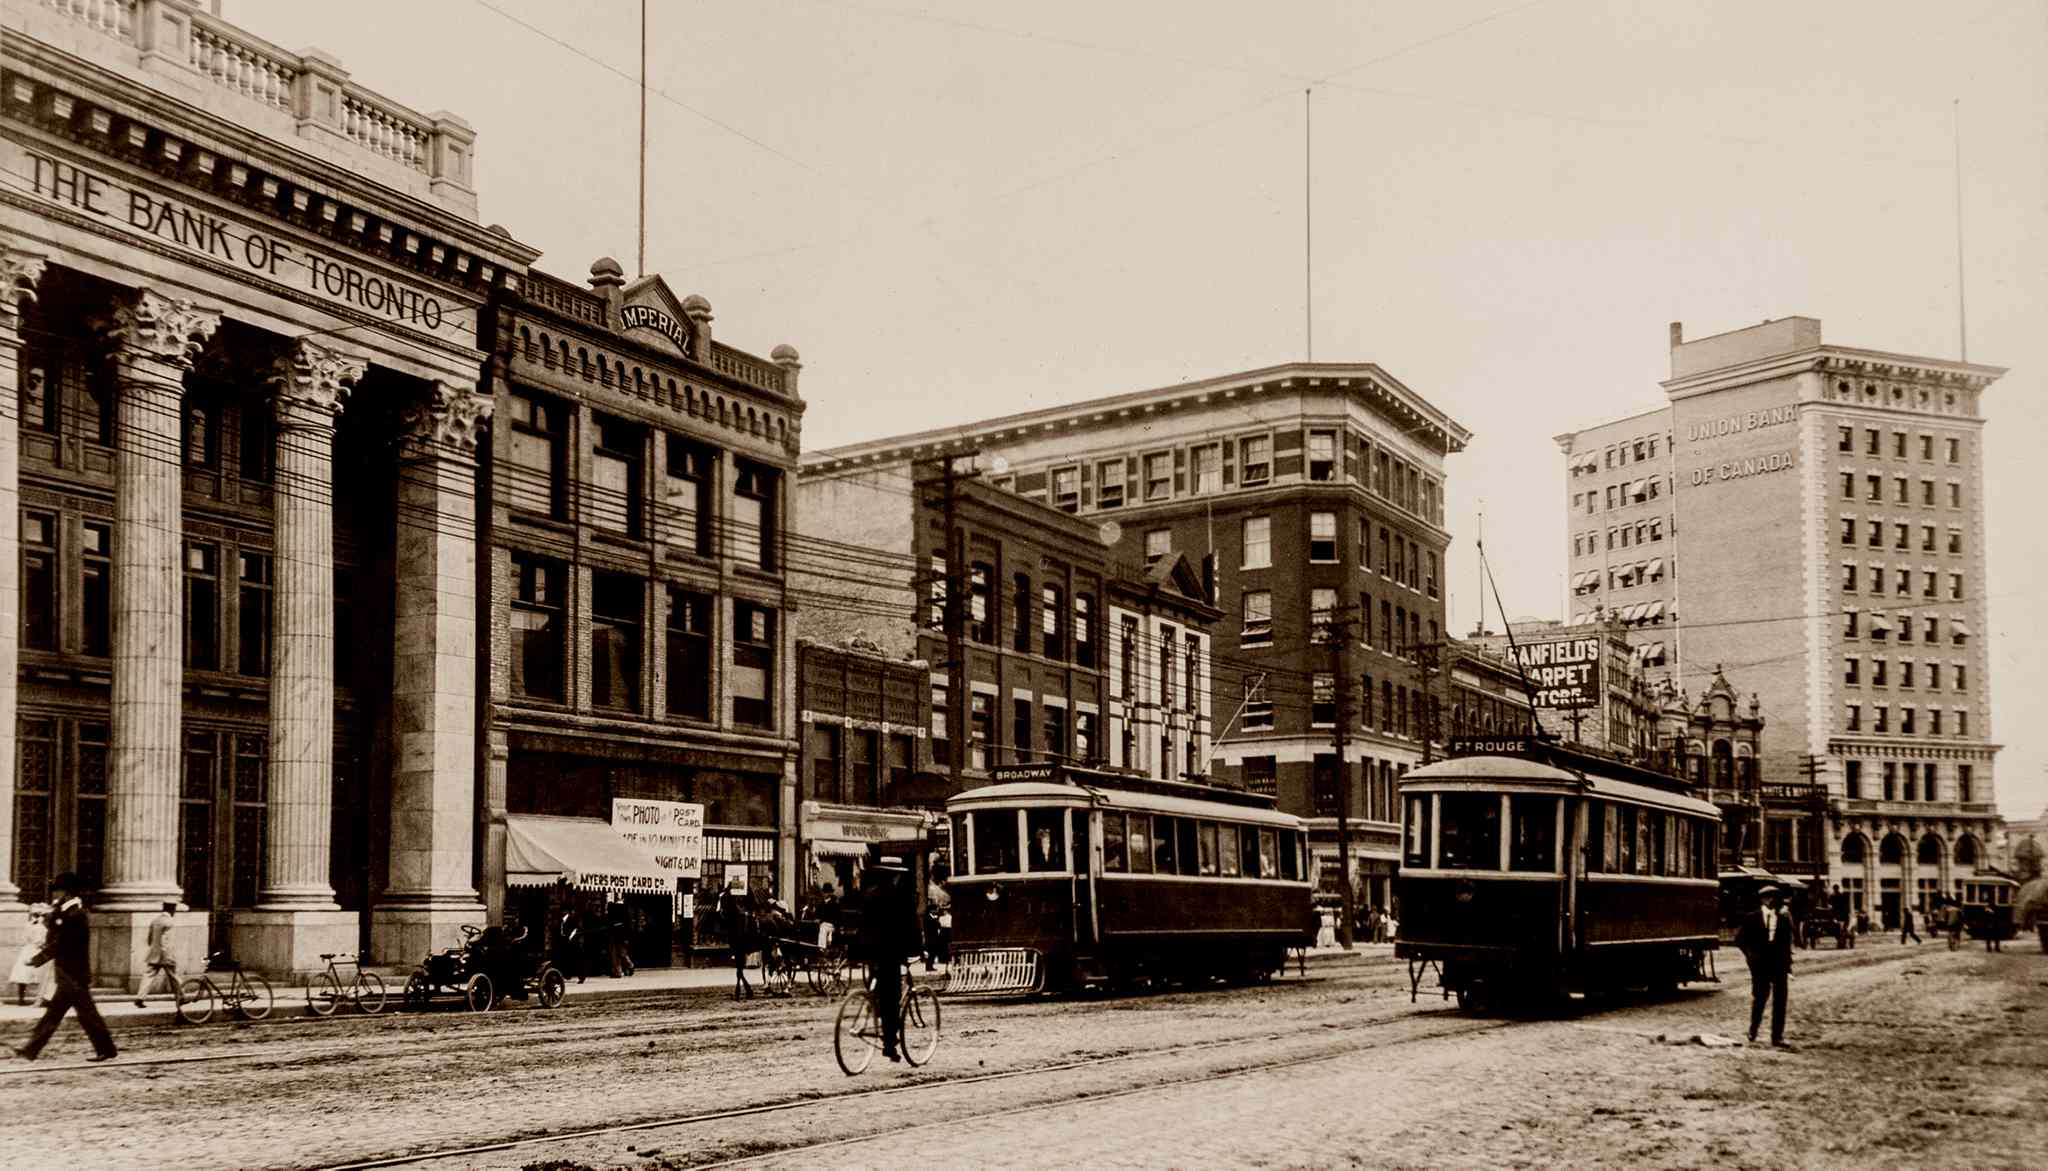 In the early 1900s, there was a belief Winnipeg could aspire to just about anything -- as Main Street's bankers' row and its monuments to wealth attested.